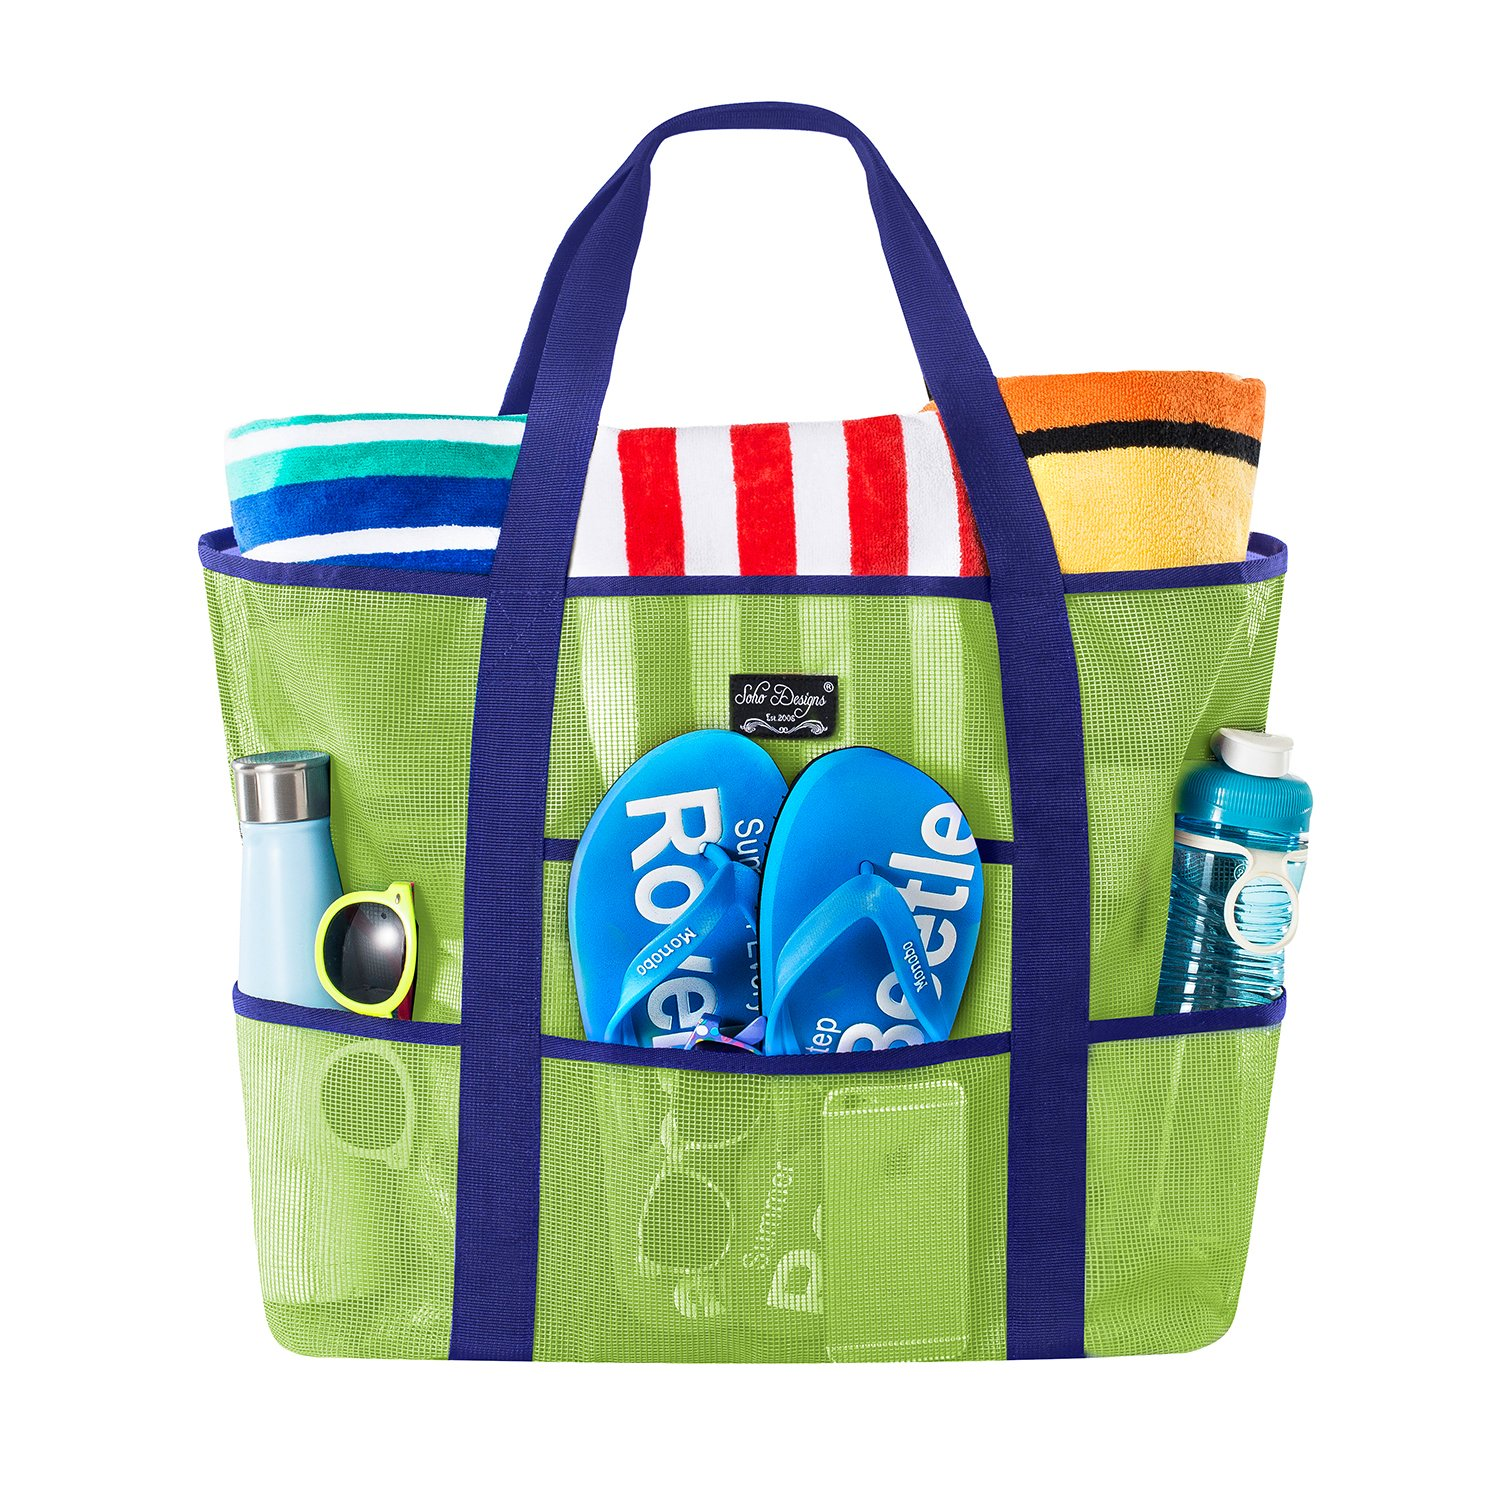 SoHo Collection, Mesh Beach Bag - Toy Tote Bag - Large Lightweight Market, Grocery & Picnic Tote with Oversized Pockets (Green/Blue)